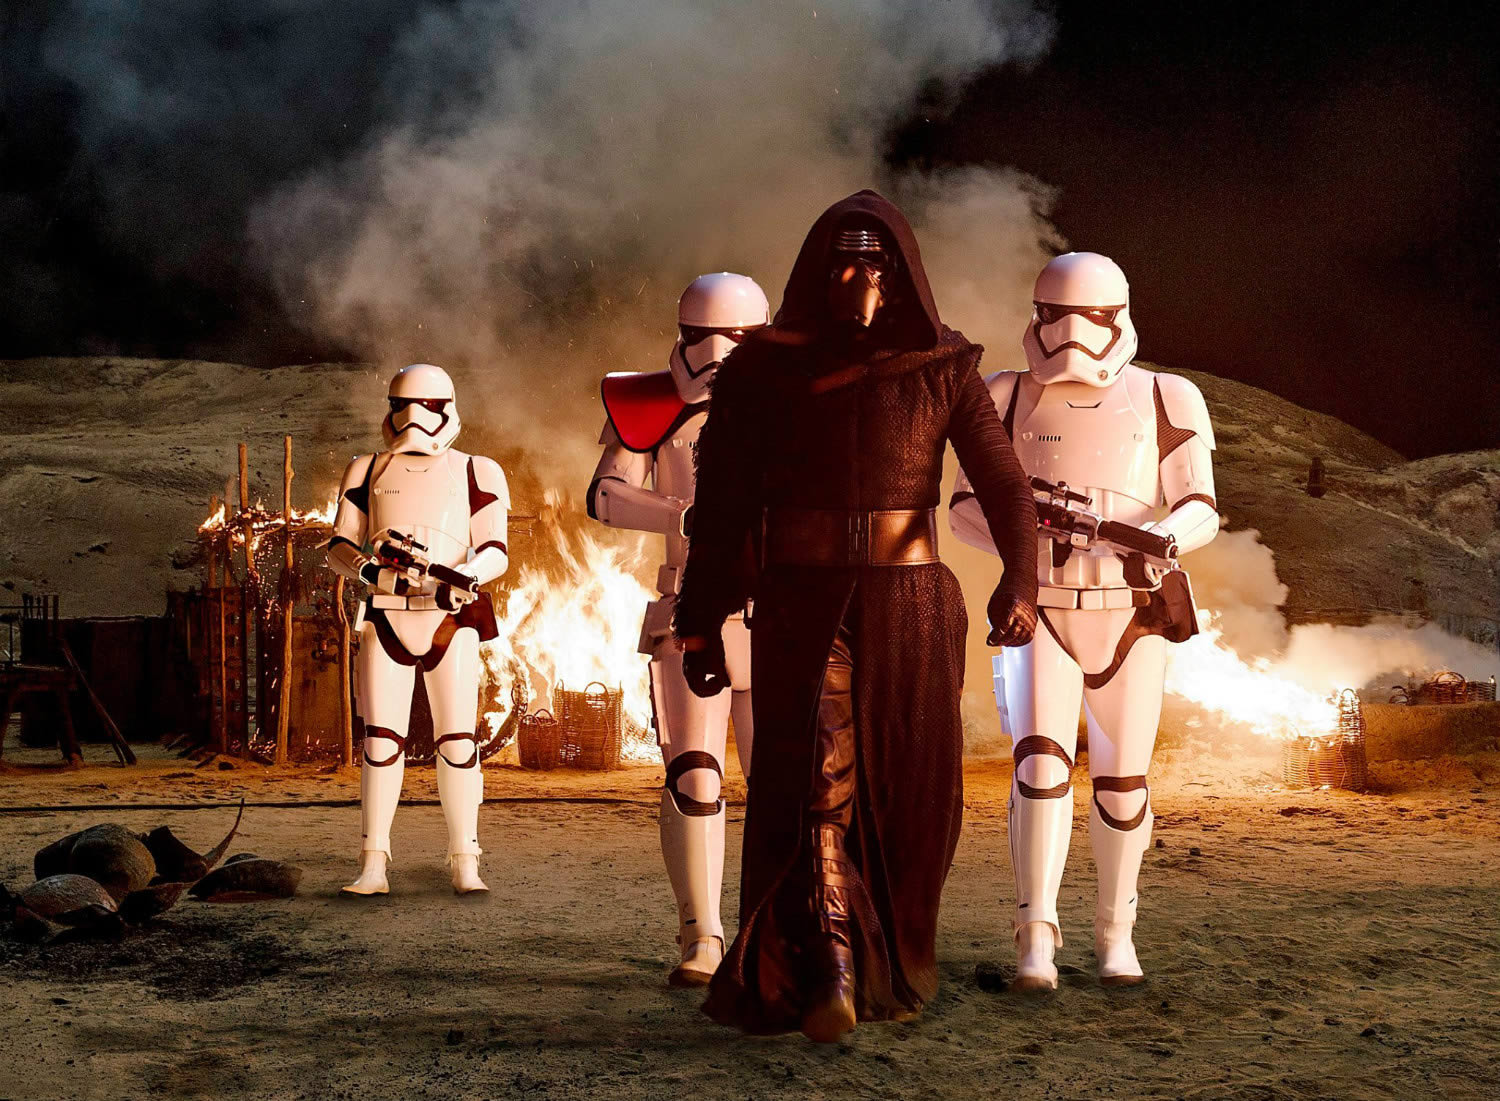 Star Wars: The Force Awakens, Kylo Ren